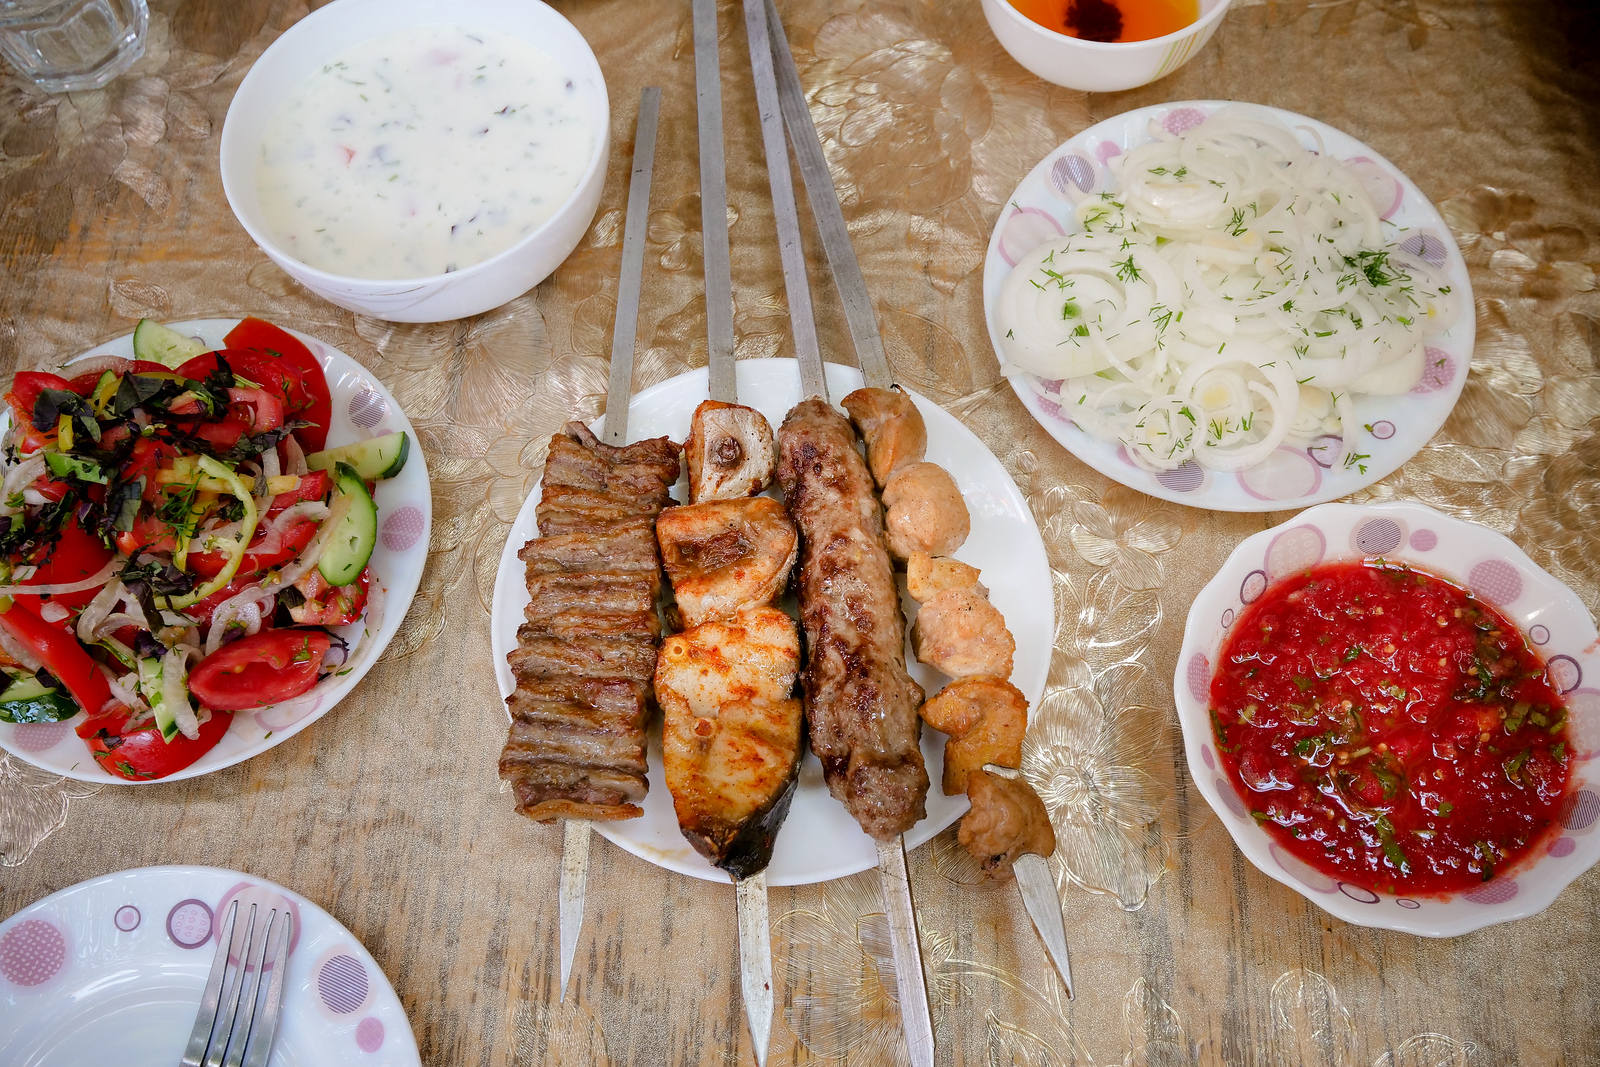 Travel Highlights Of Uzbekistan 14 Days Of Meat History And